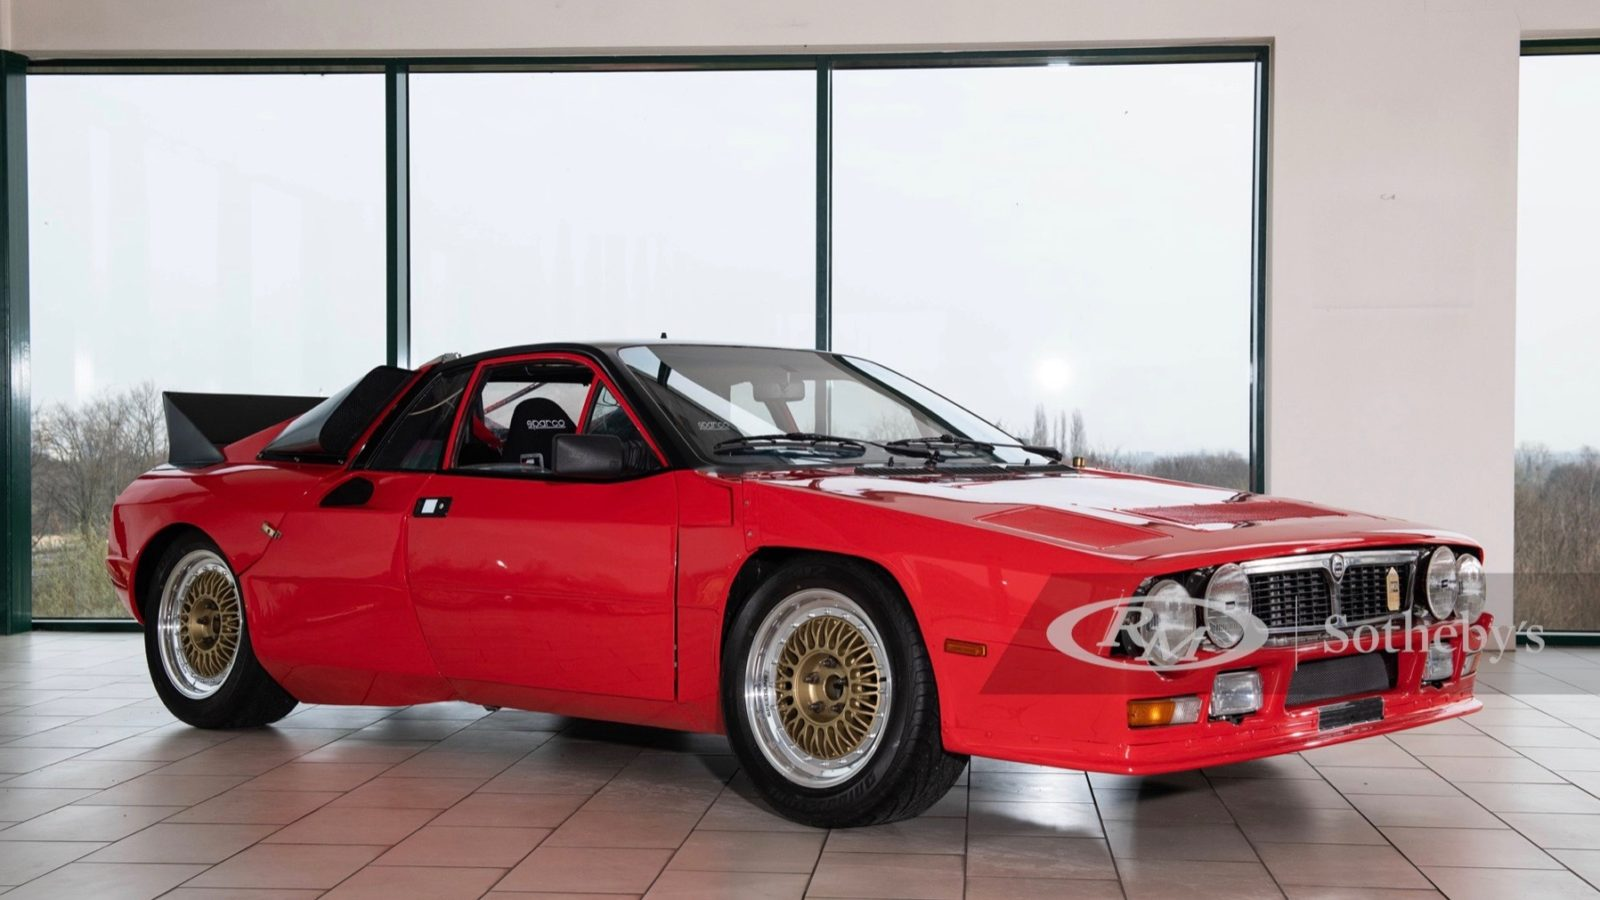 live-your-group-b-dreams-with-this-1980-lancia-rally-se-037-prototype